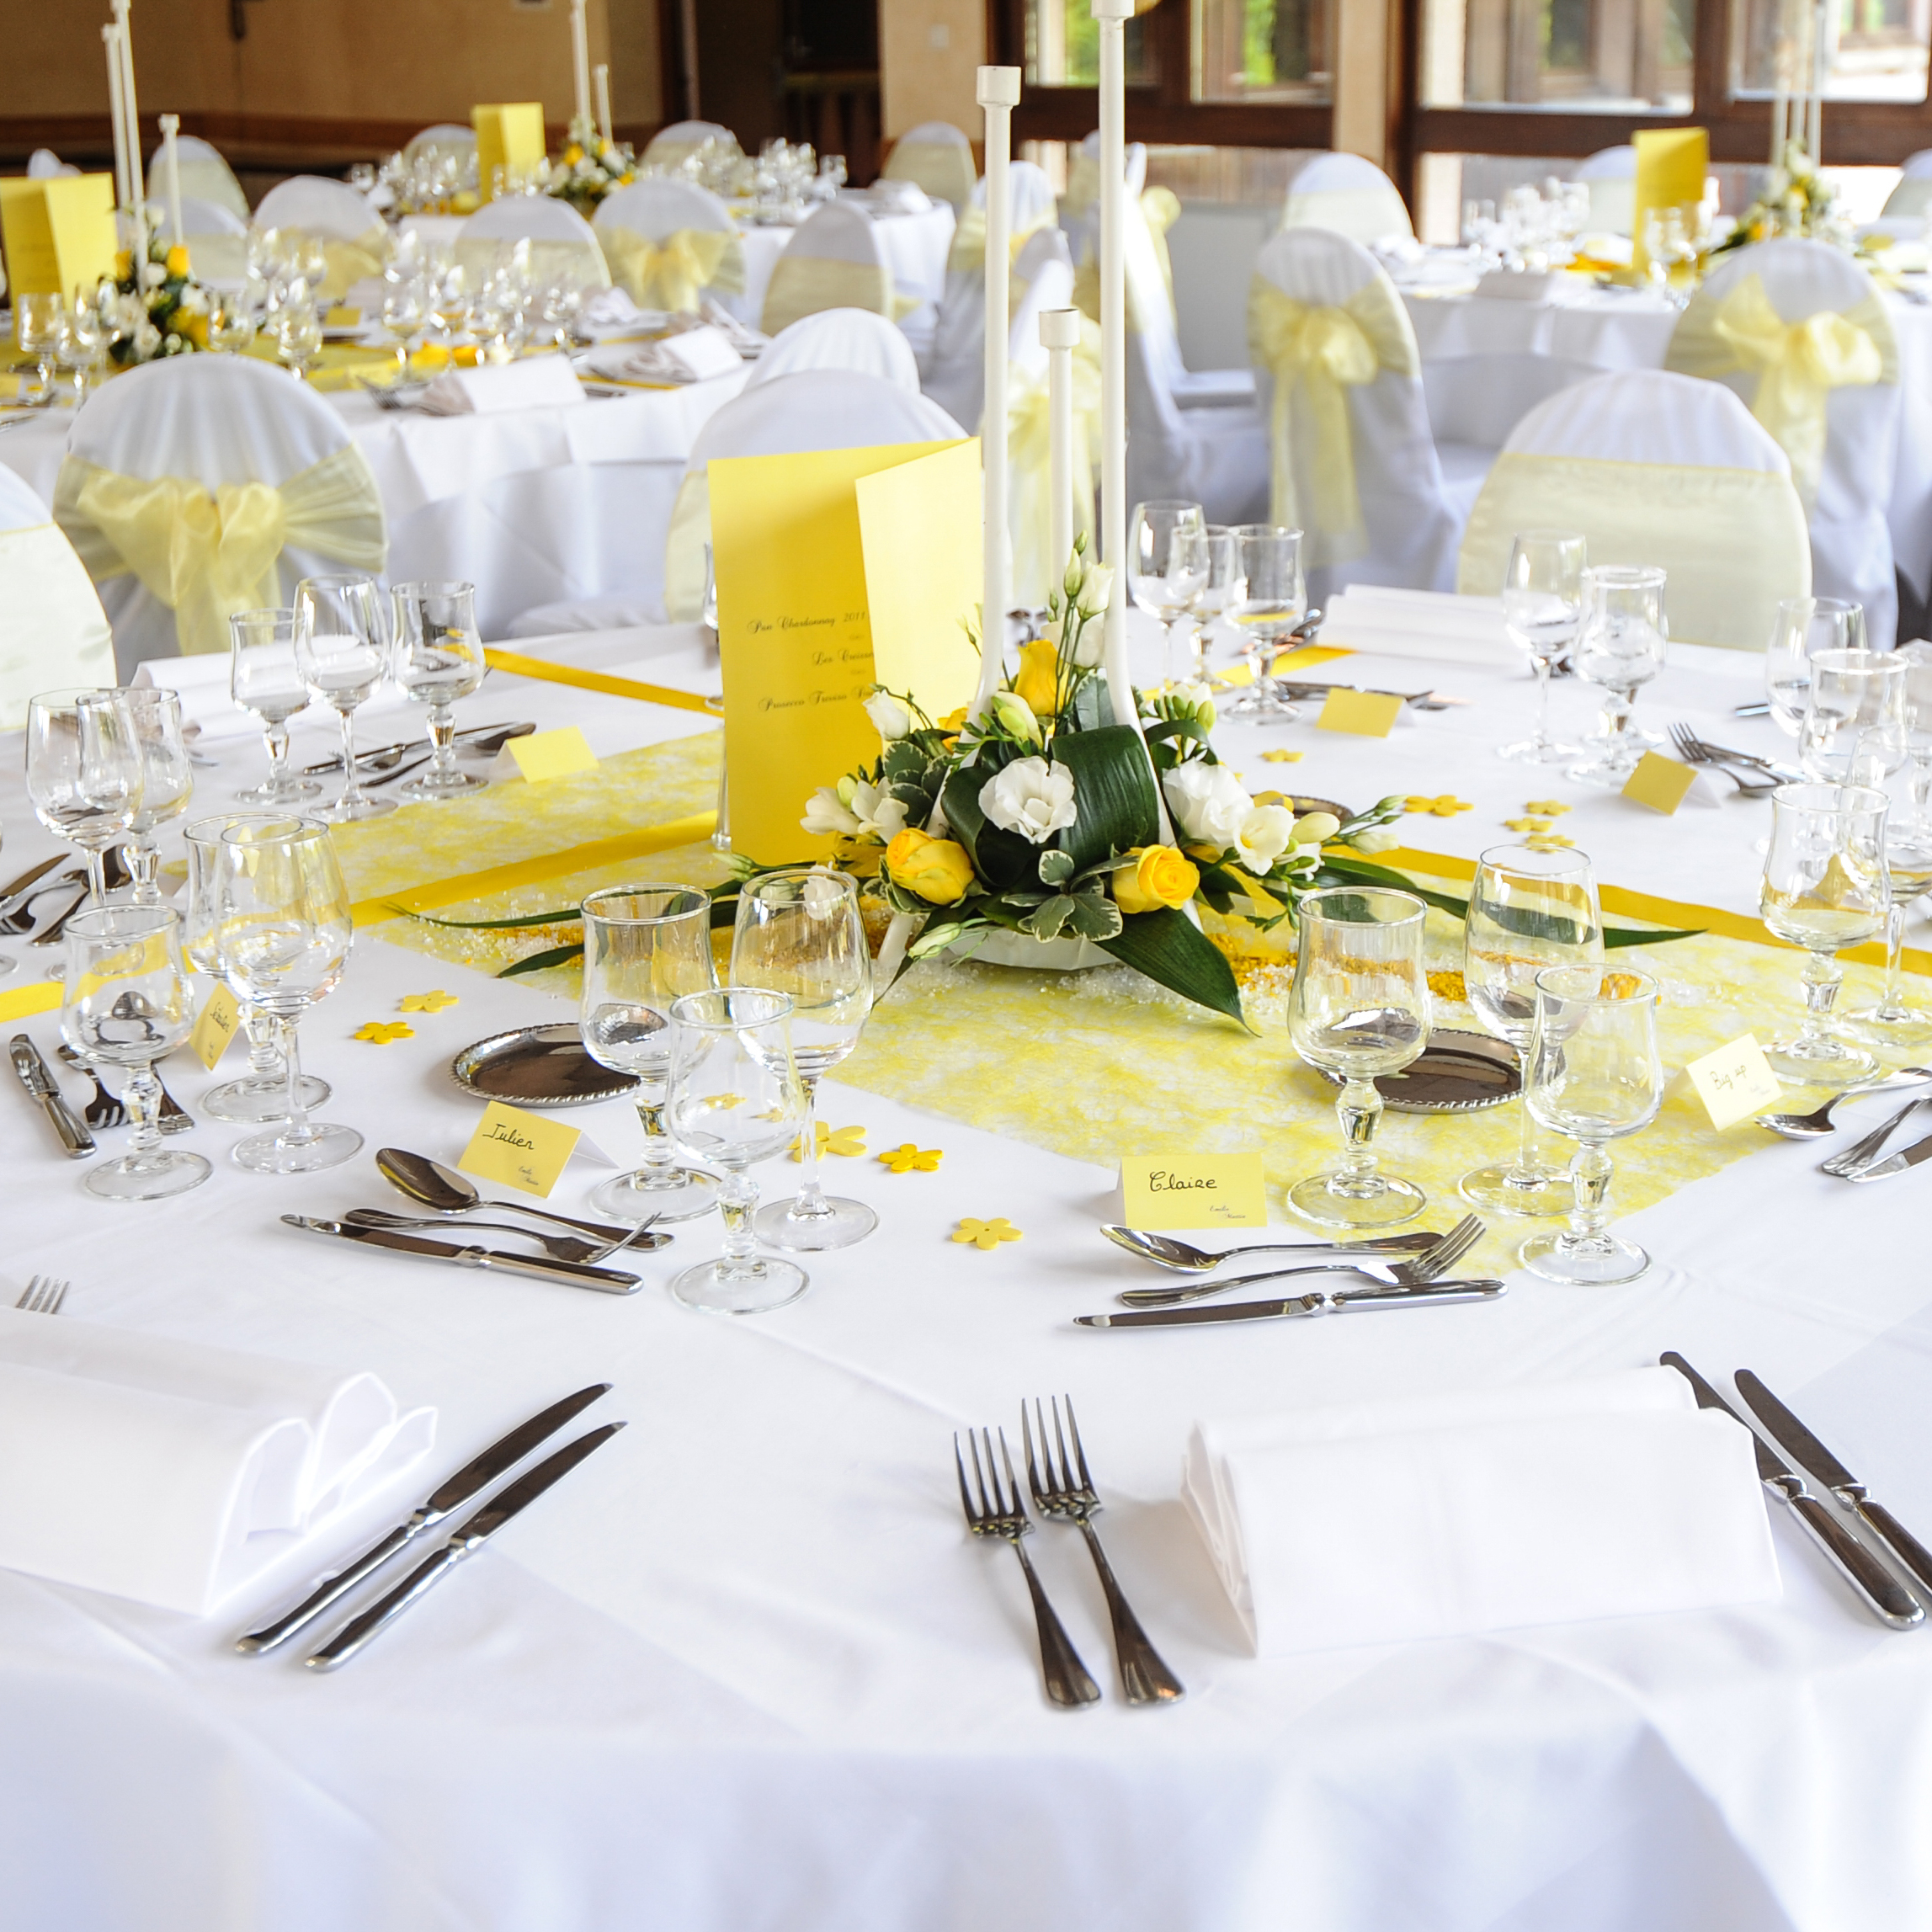 Th me de mariage jaune et blanc paillet sur mesure for Decoration jaune